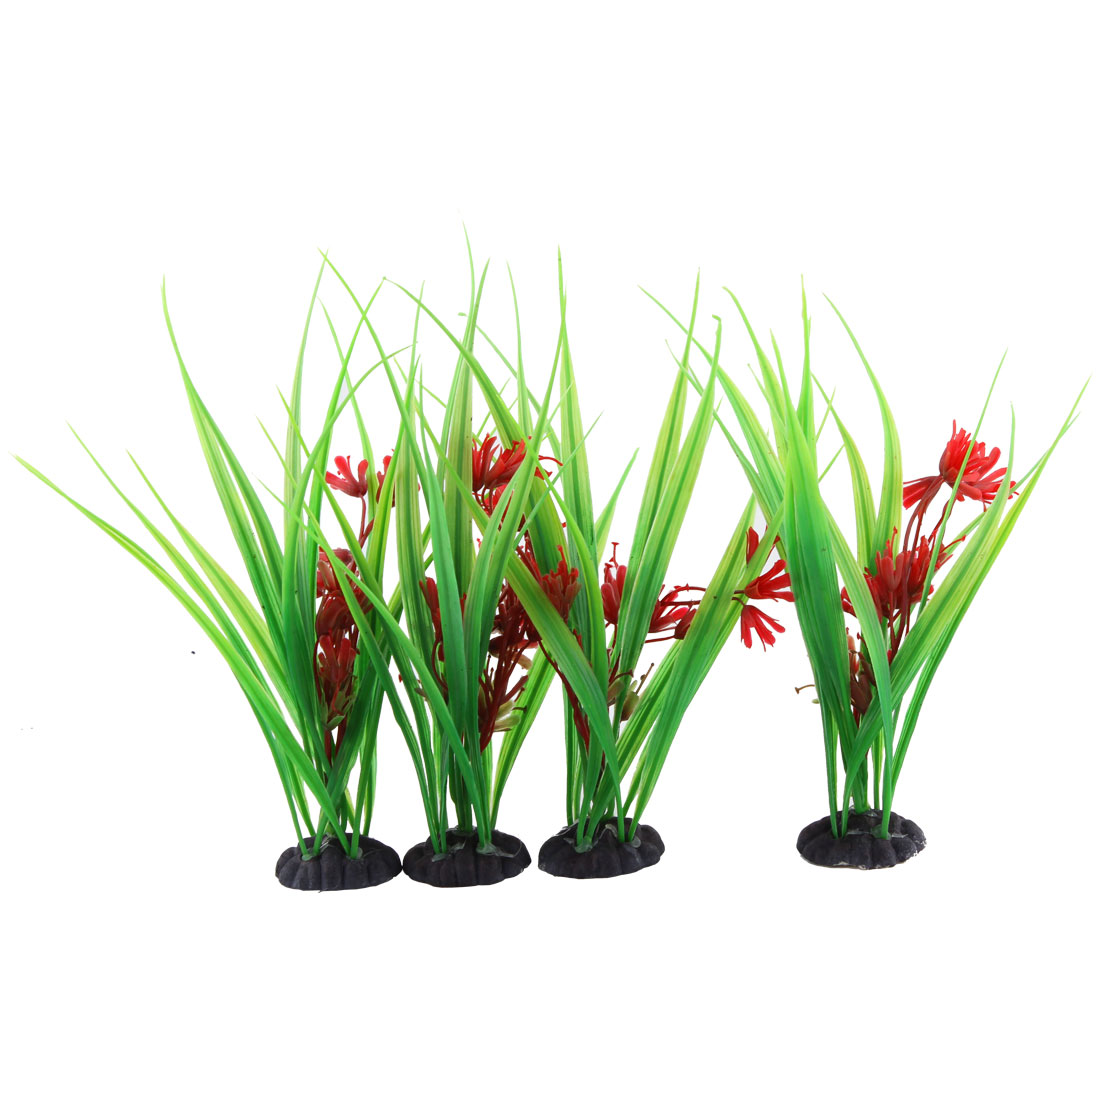 Fish Tank Aquarium Decoration Ceramic Base Artificial Water Plants Grass 4Pcs